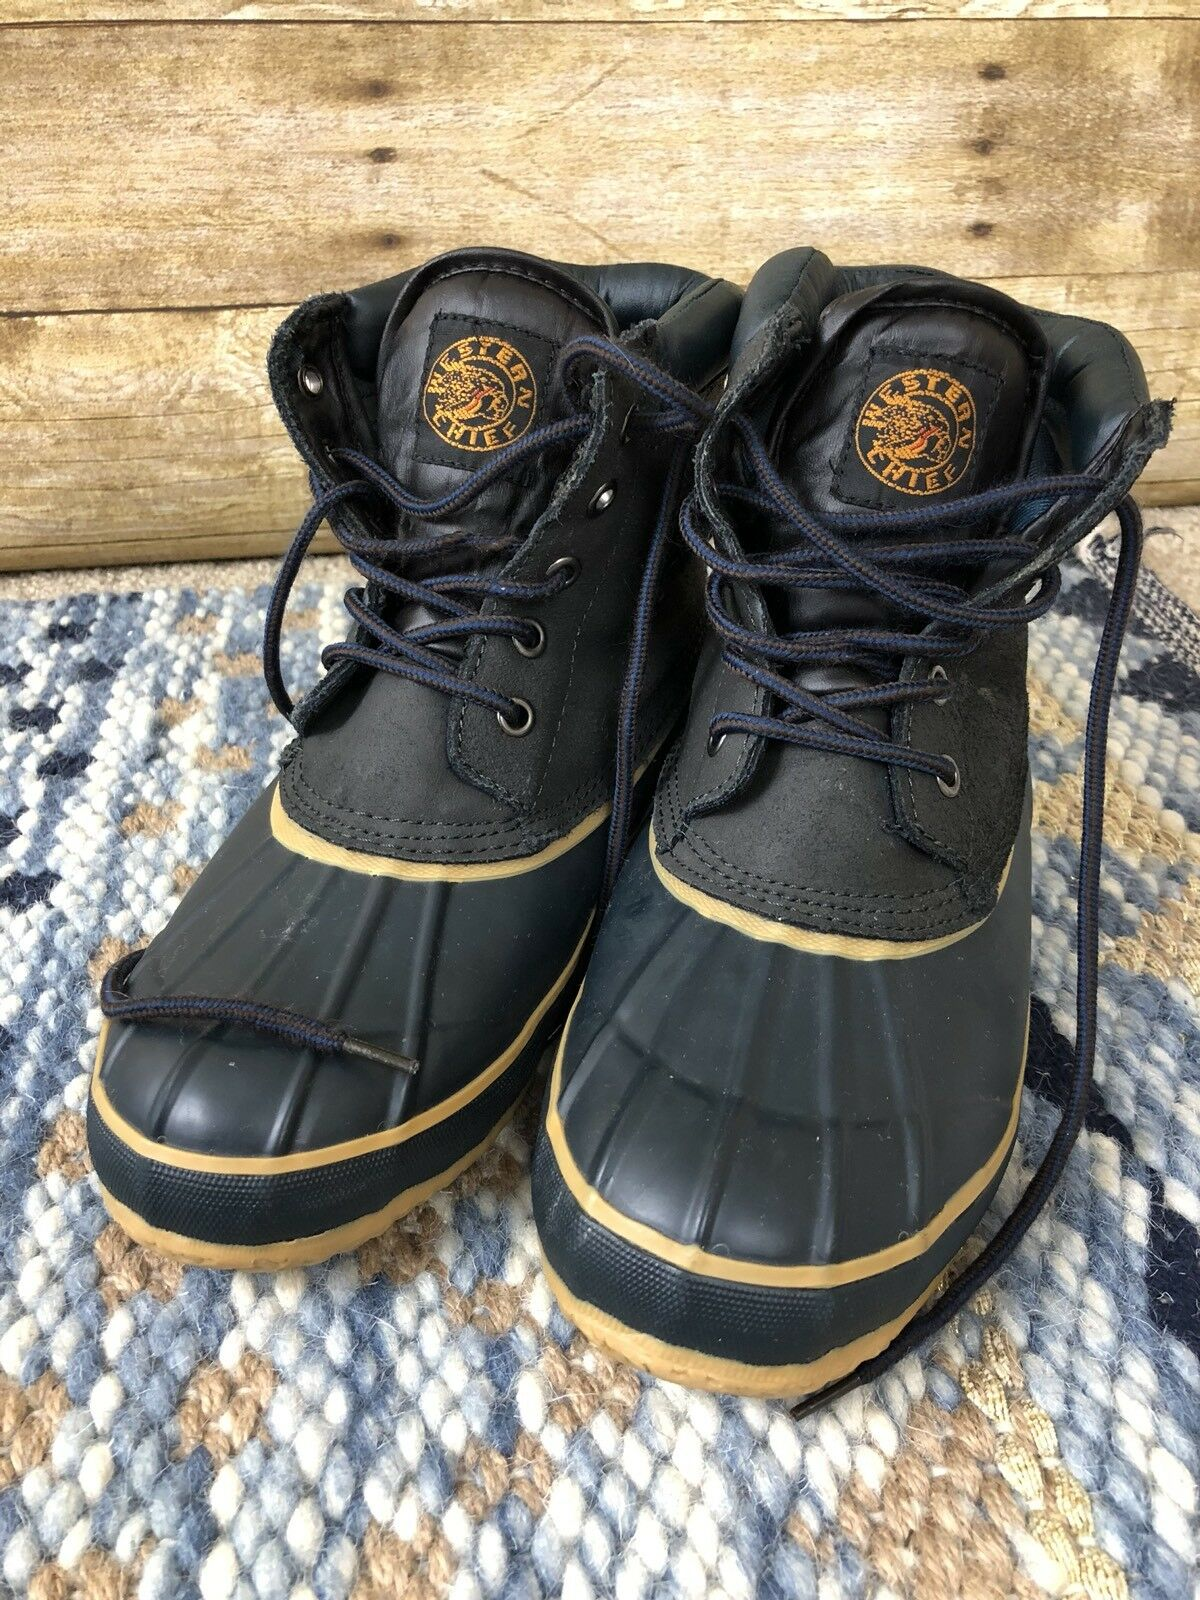 Western Chief Navy Blue Lace Up Duck Boots Navy Size 8 US Steal Shank Thermo